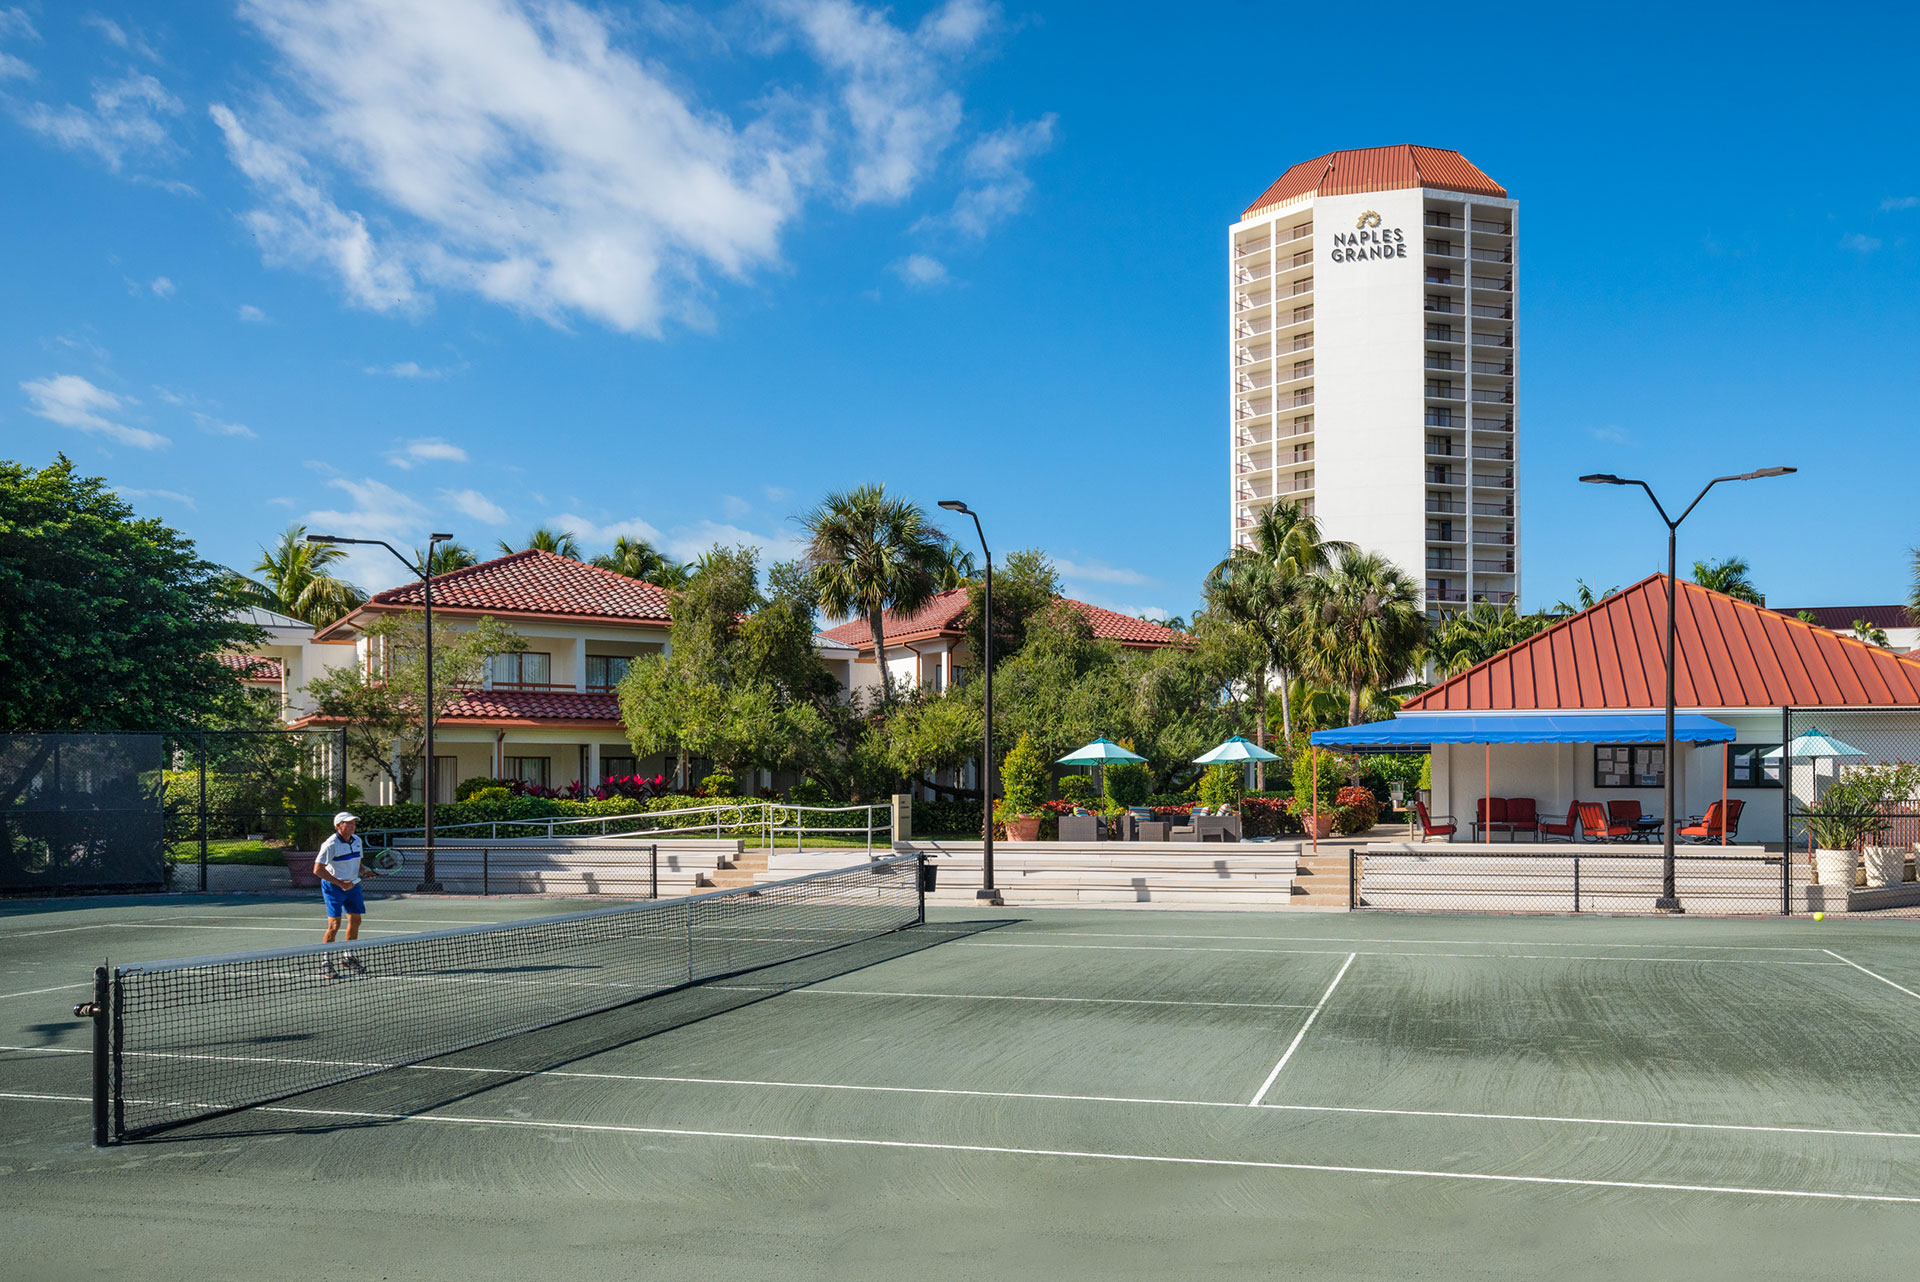 Naples Tennis Club | Florida Tennis Resort | Naples Grande